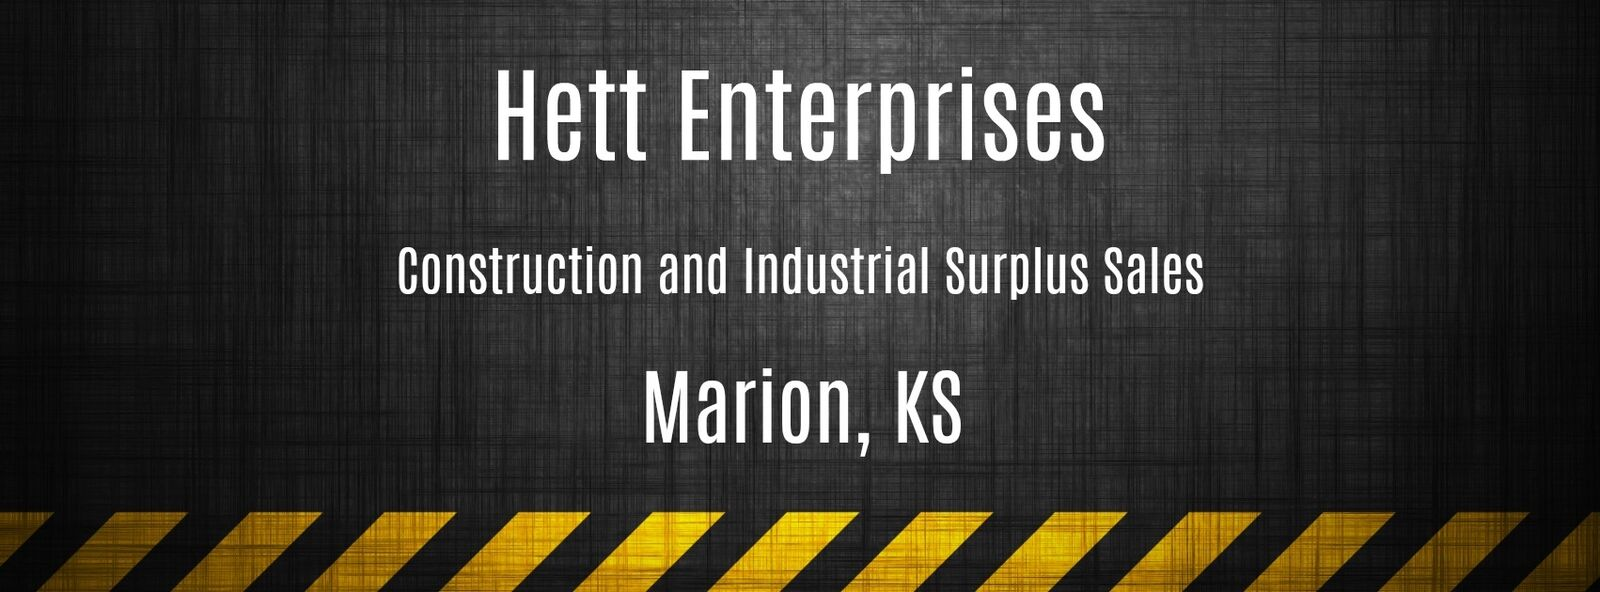 Hett Enterprises